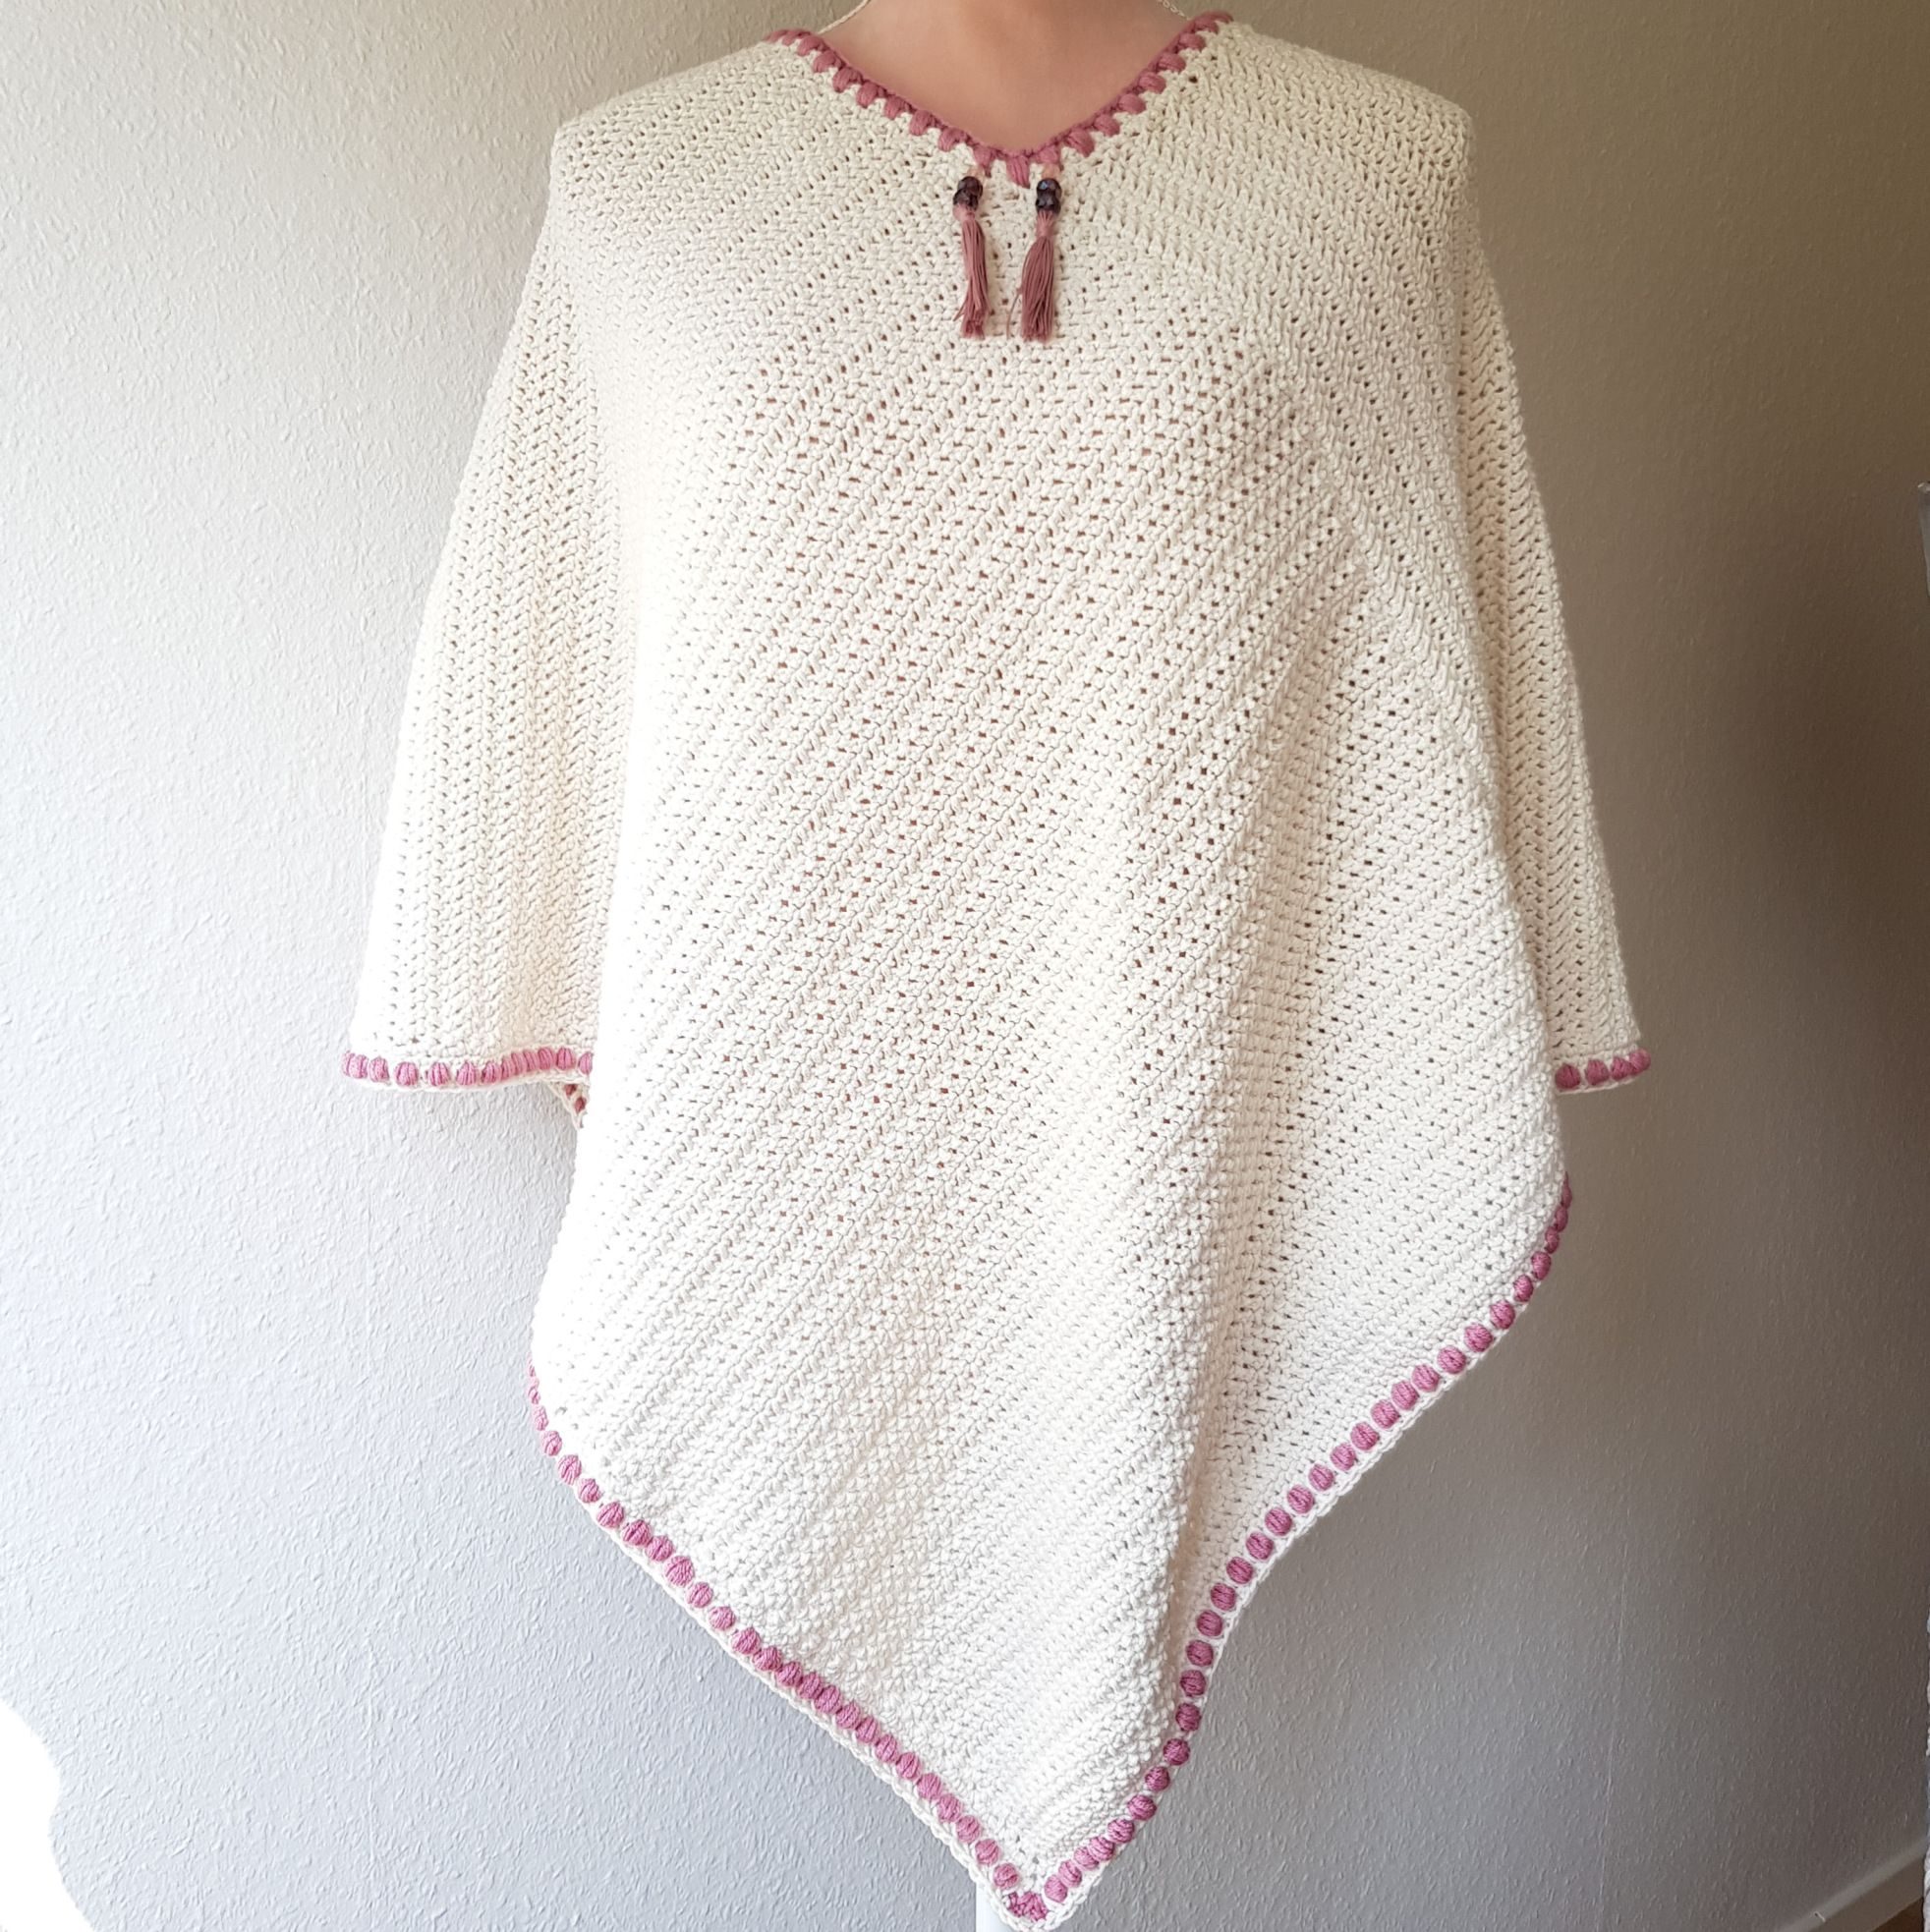 611a44731bd3 TOPAZ PONCHO Please use  topazponcho and  bymimzan in social medias so I  can find your lovely photos If you like to support my work as a crochet  designer